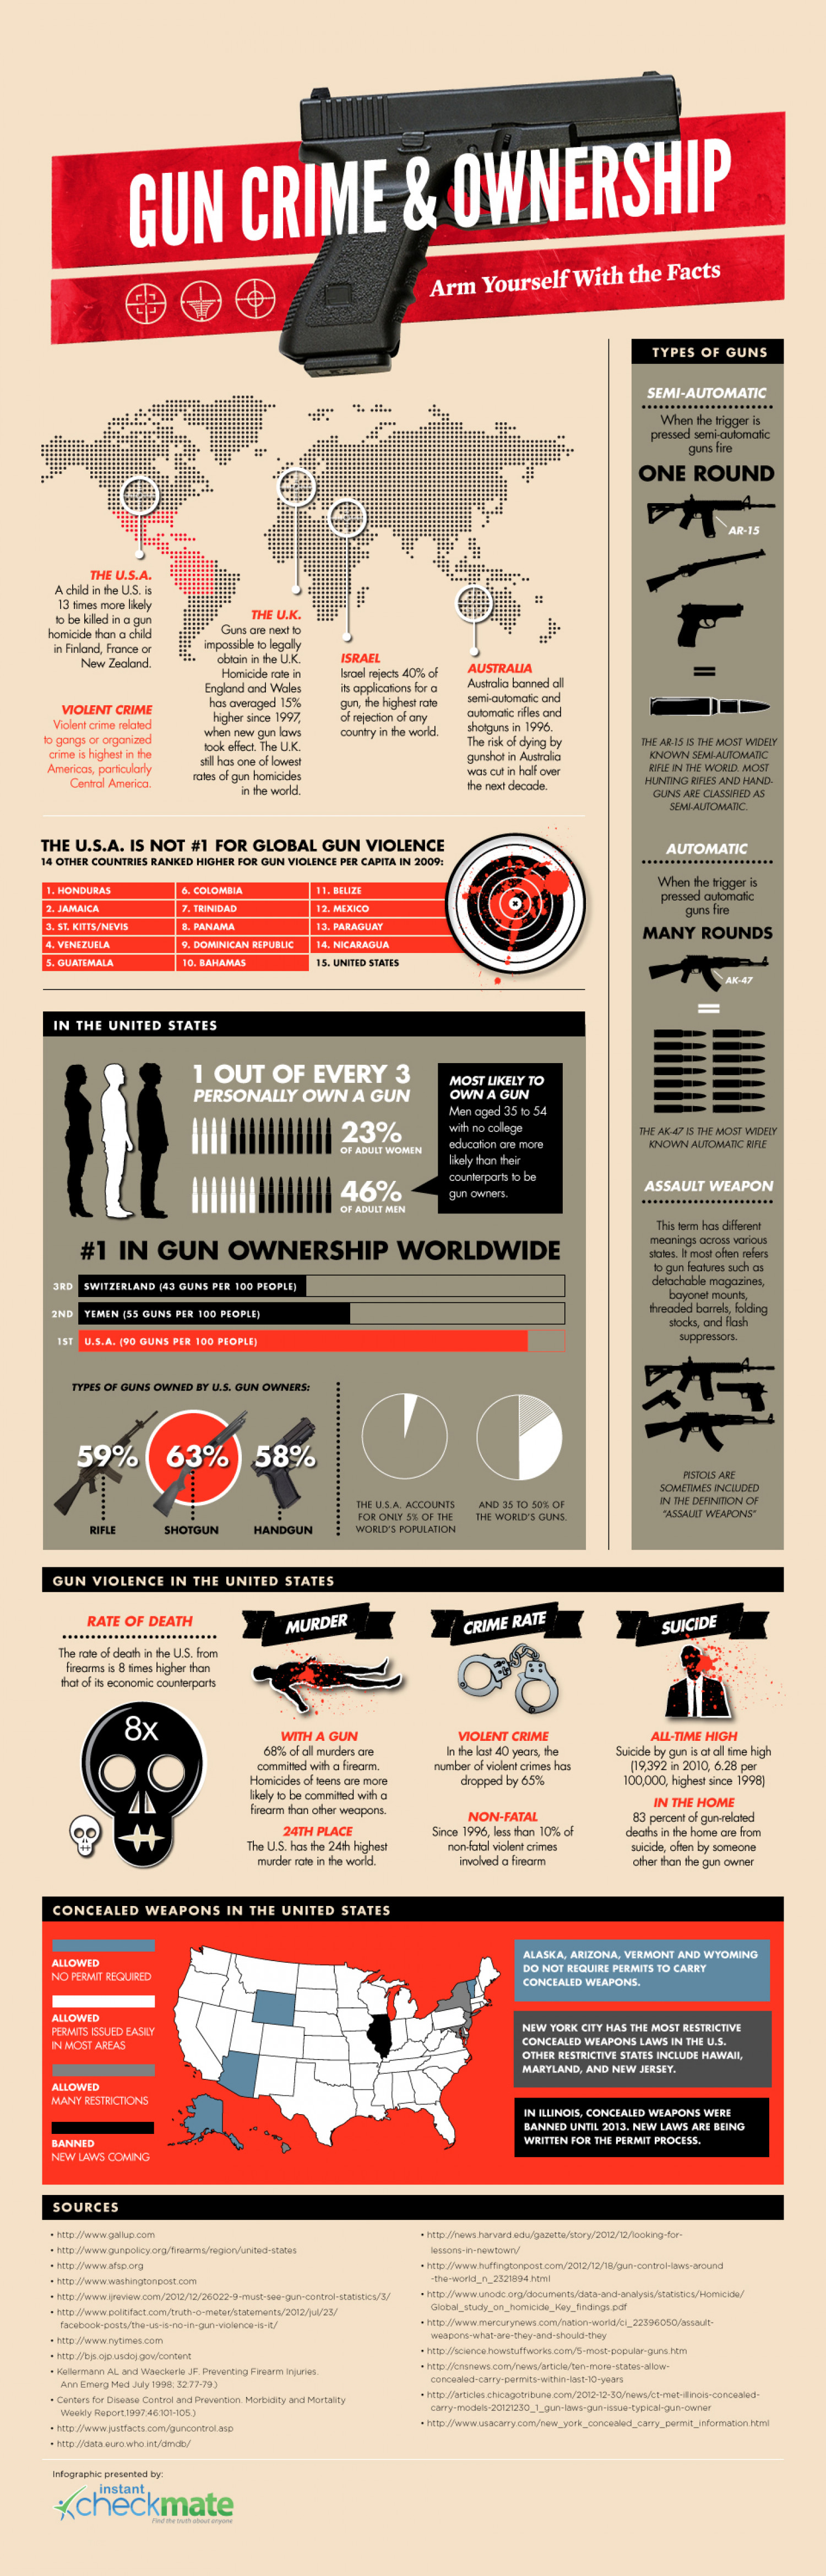 Gun Crime Ownership: Arm Yourself With The Facts Infographic